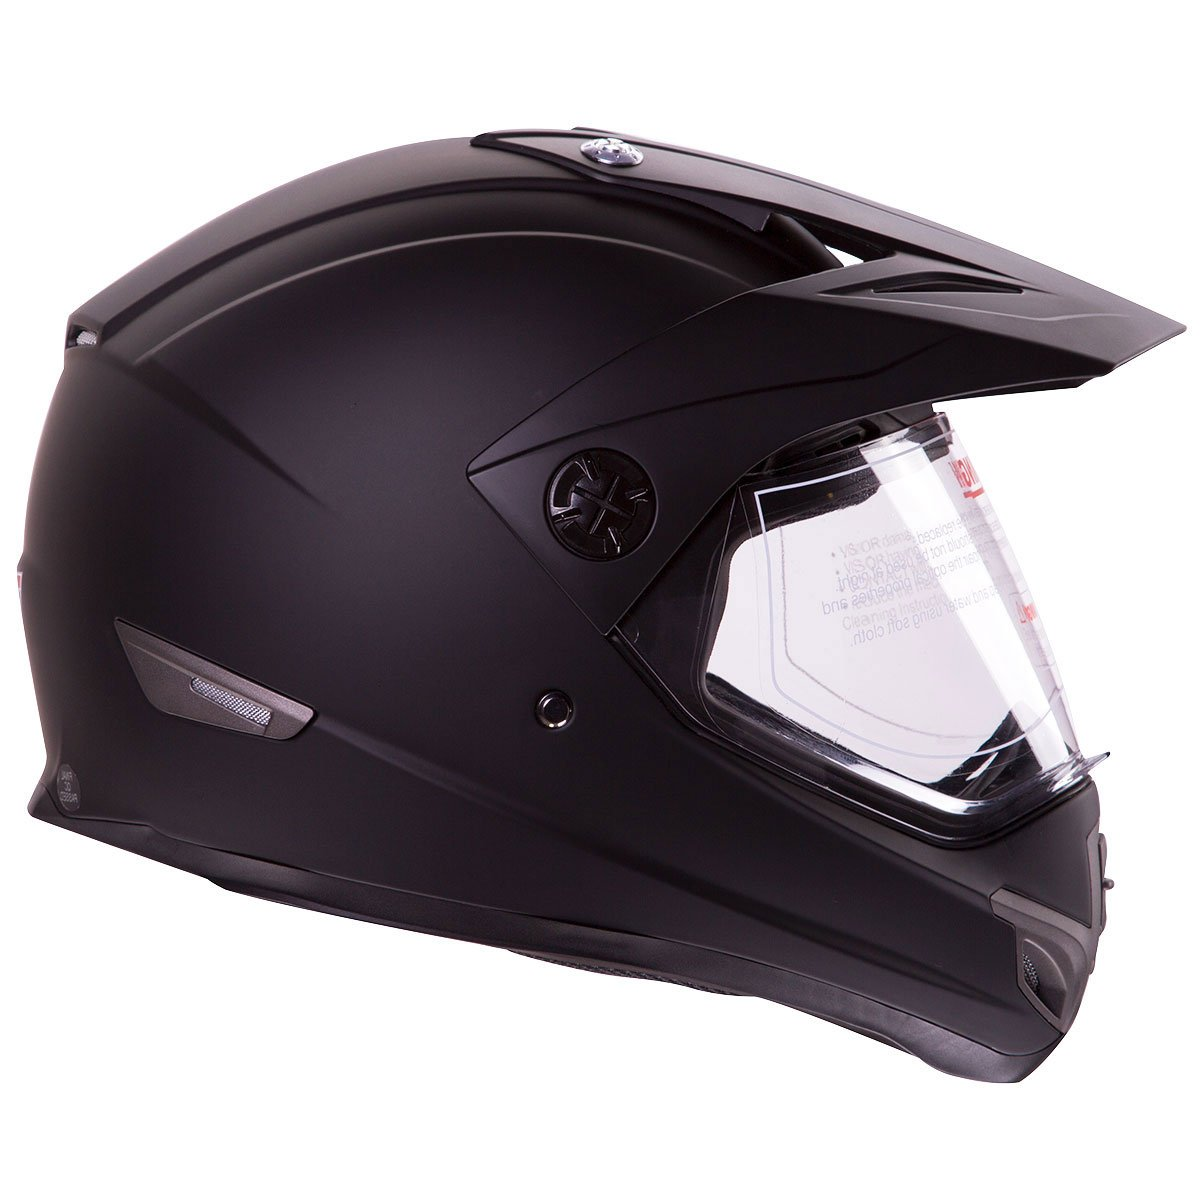 Amazon.com: Flat Black Dual Sport Atv Utv Motocross Street Bike Hybrid Helmet DOT (M): Automotive